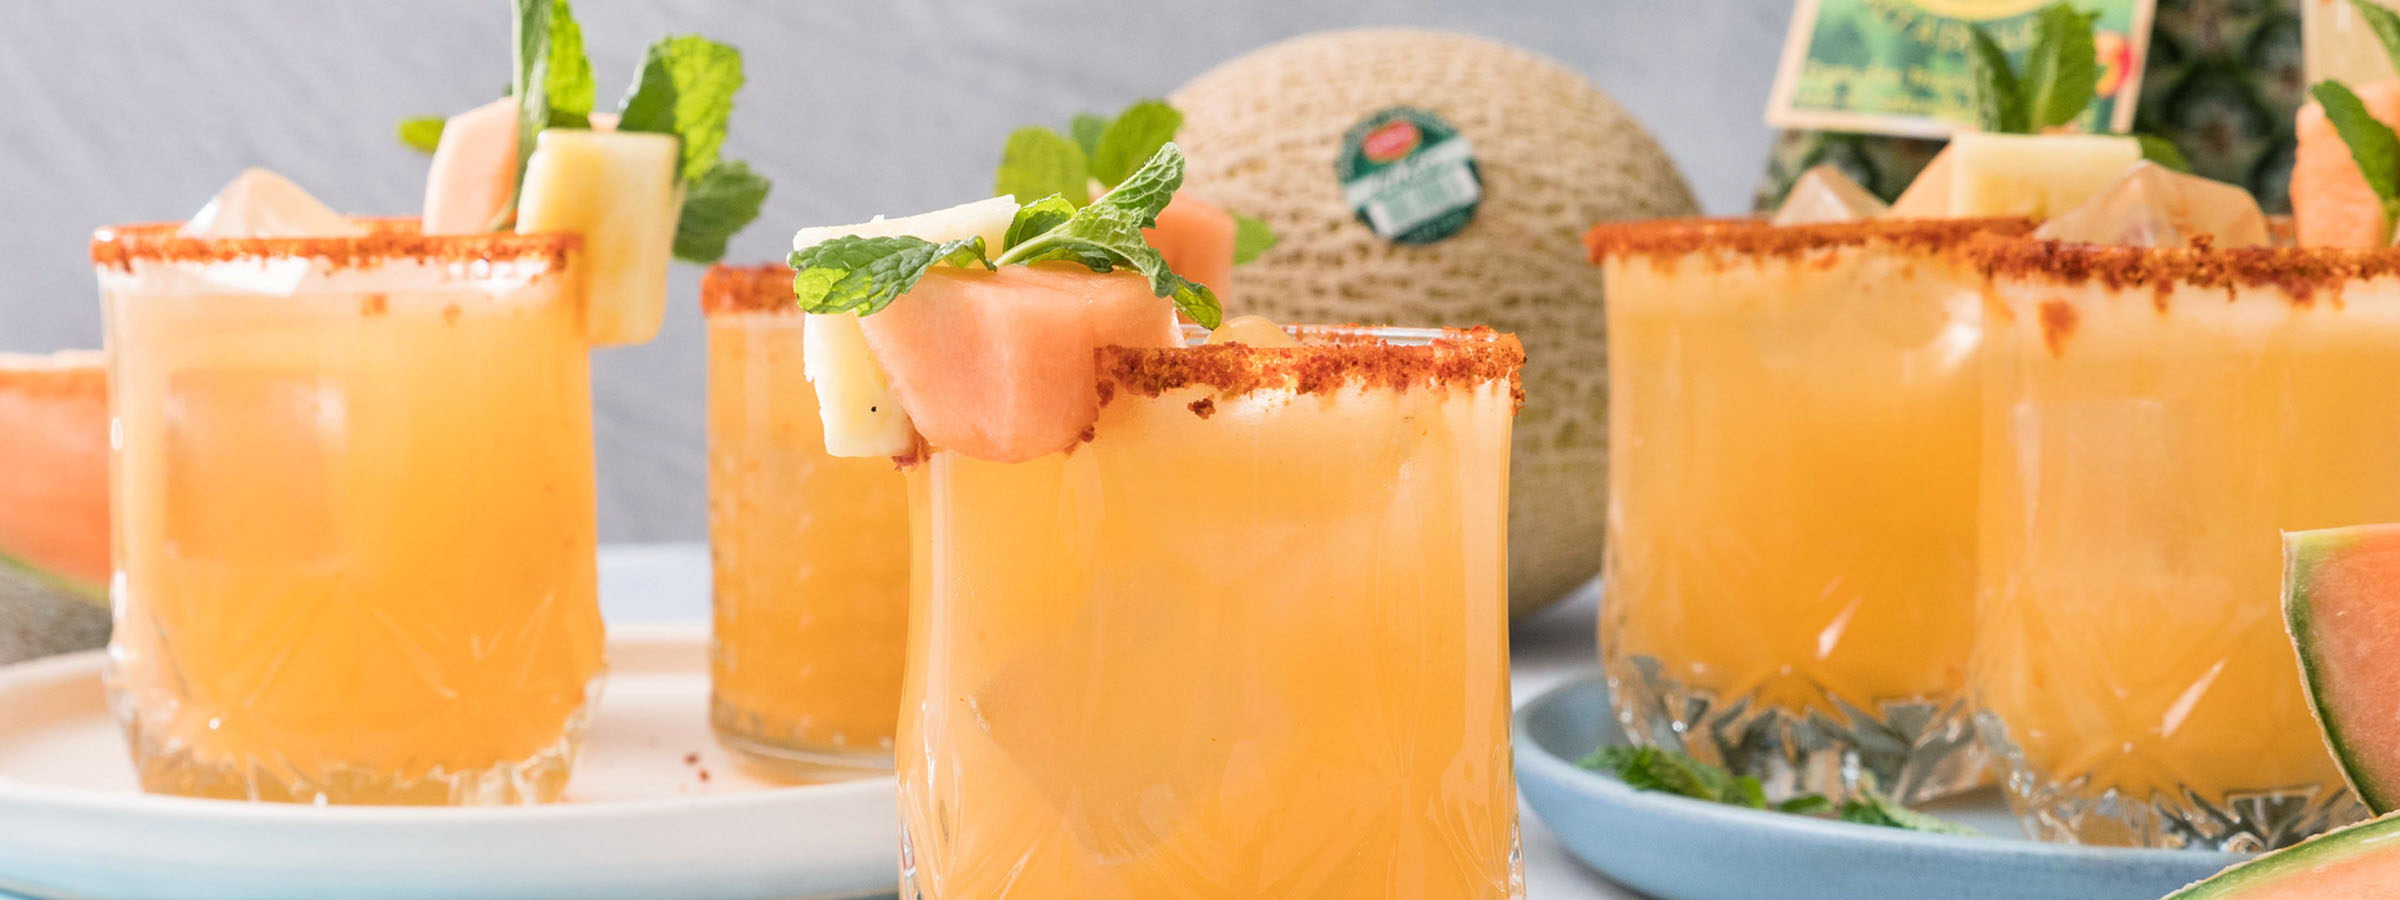 Pineapple-Melon-Agua-Fresca-Coolers_Fruits.com_